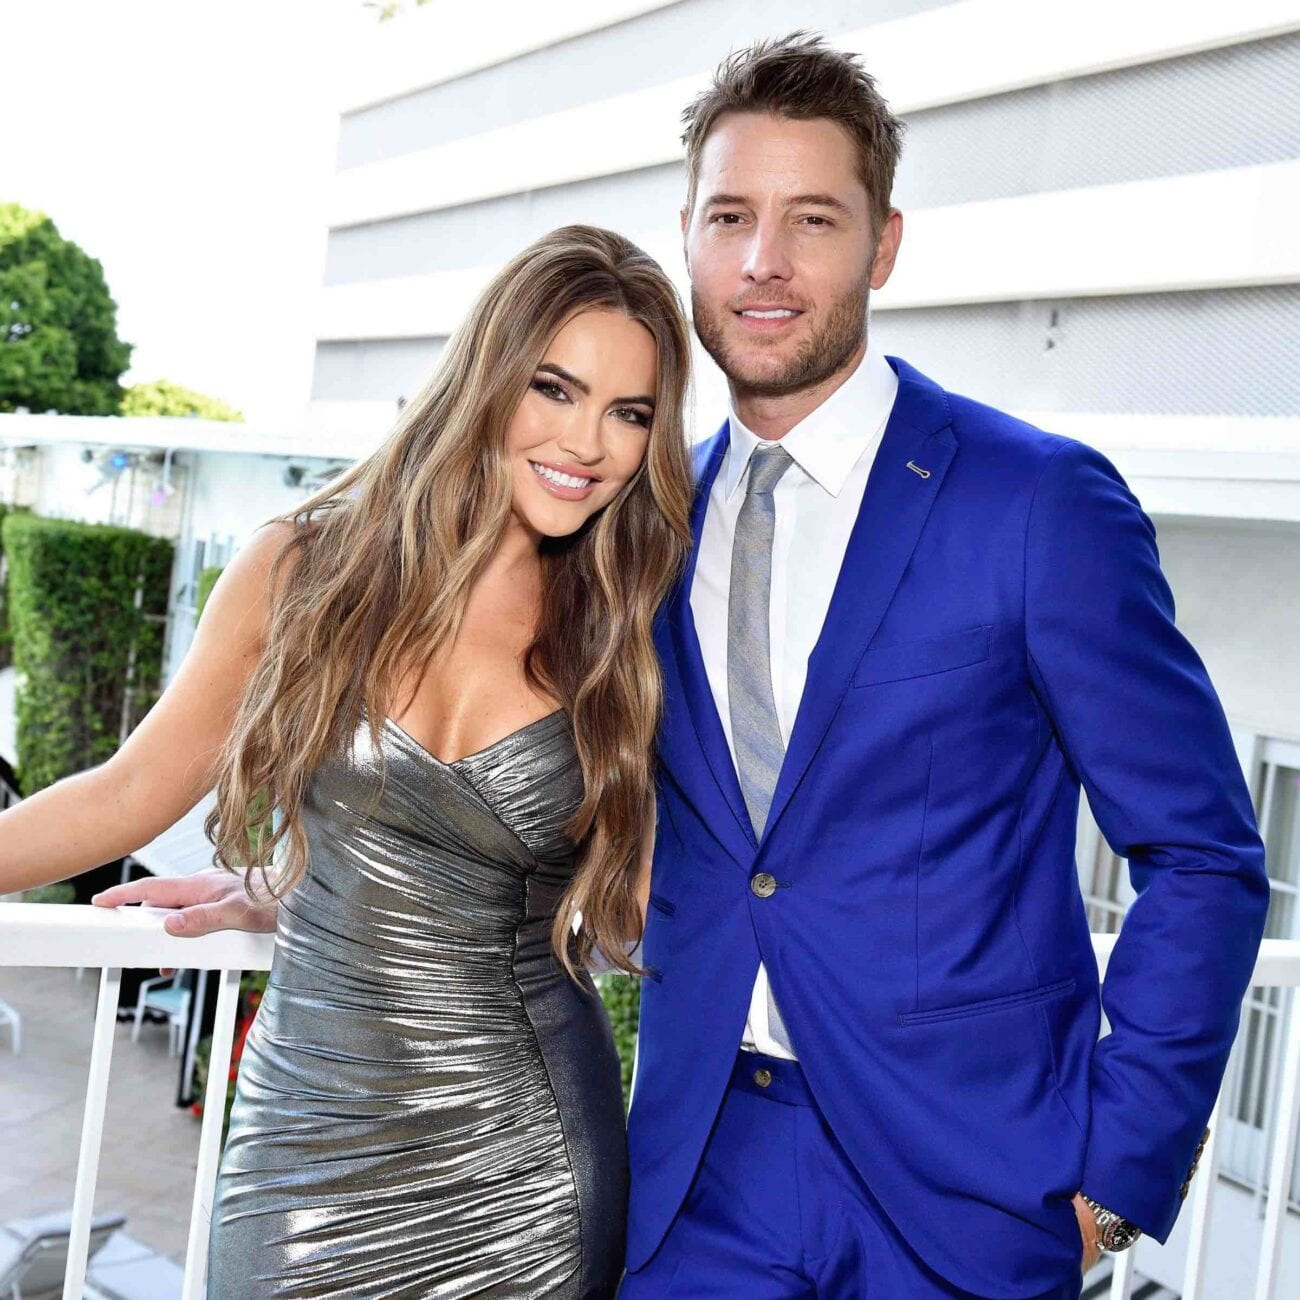 Justin Hartley has a new girlfriend. How does his ex-wife Chrishell Stause feel about his new coupling?